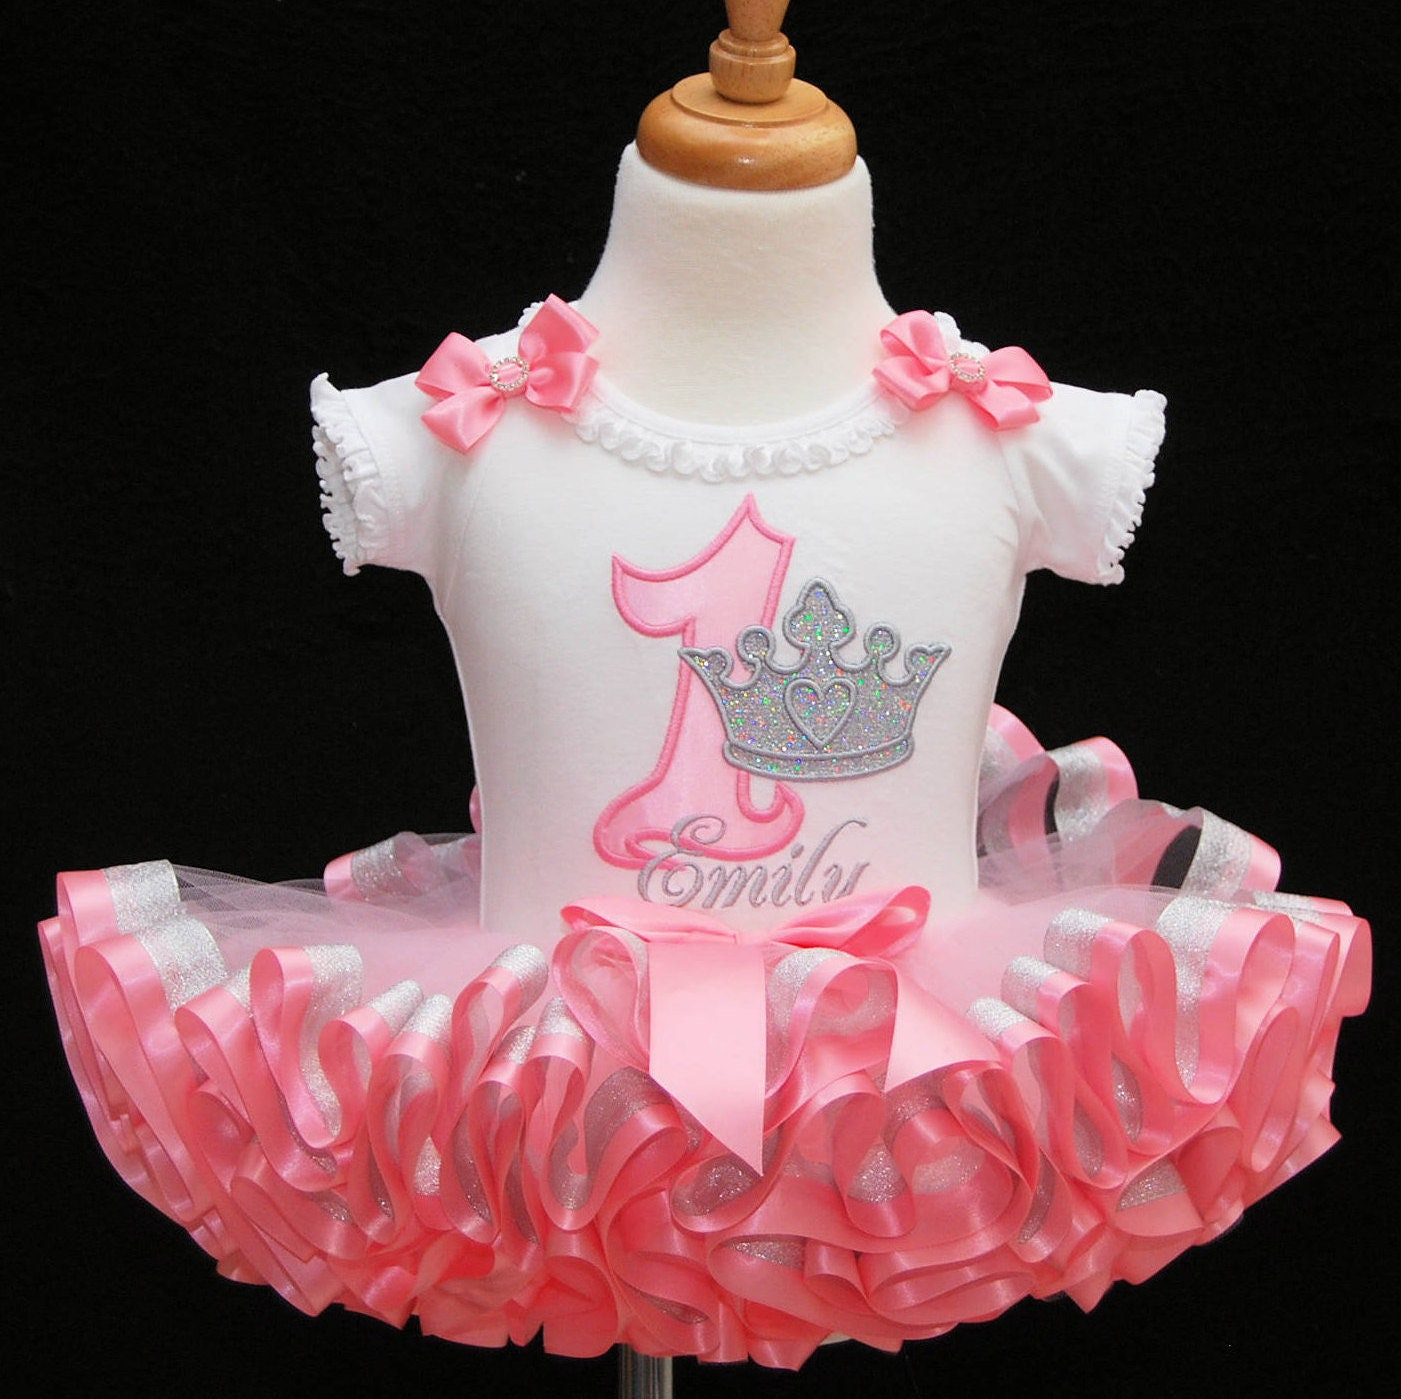 1st birthday outfit girl princess outfit 1st birthday girl outfit cake smash first birthday tutu outfit ribbon trim pink & silver tutu dress